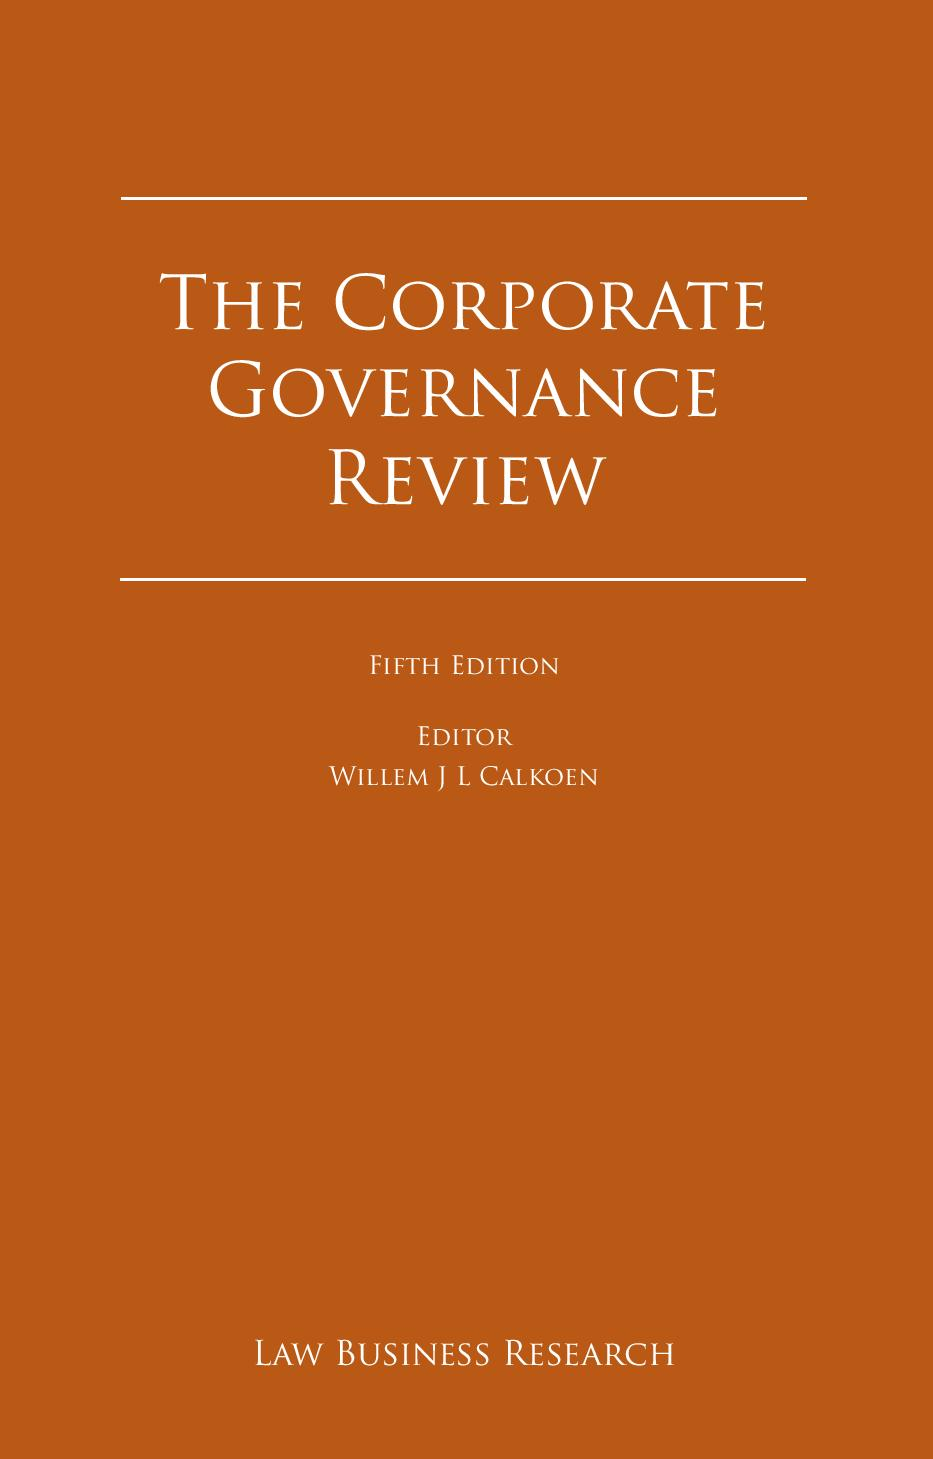 The Corporate Governance Review - Edition 5